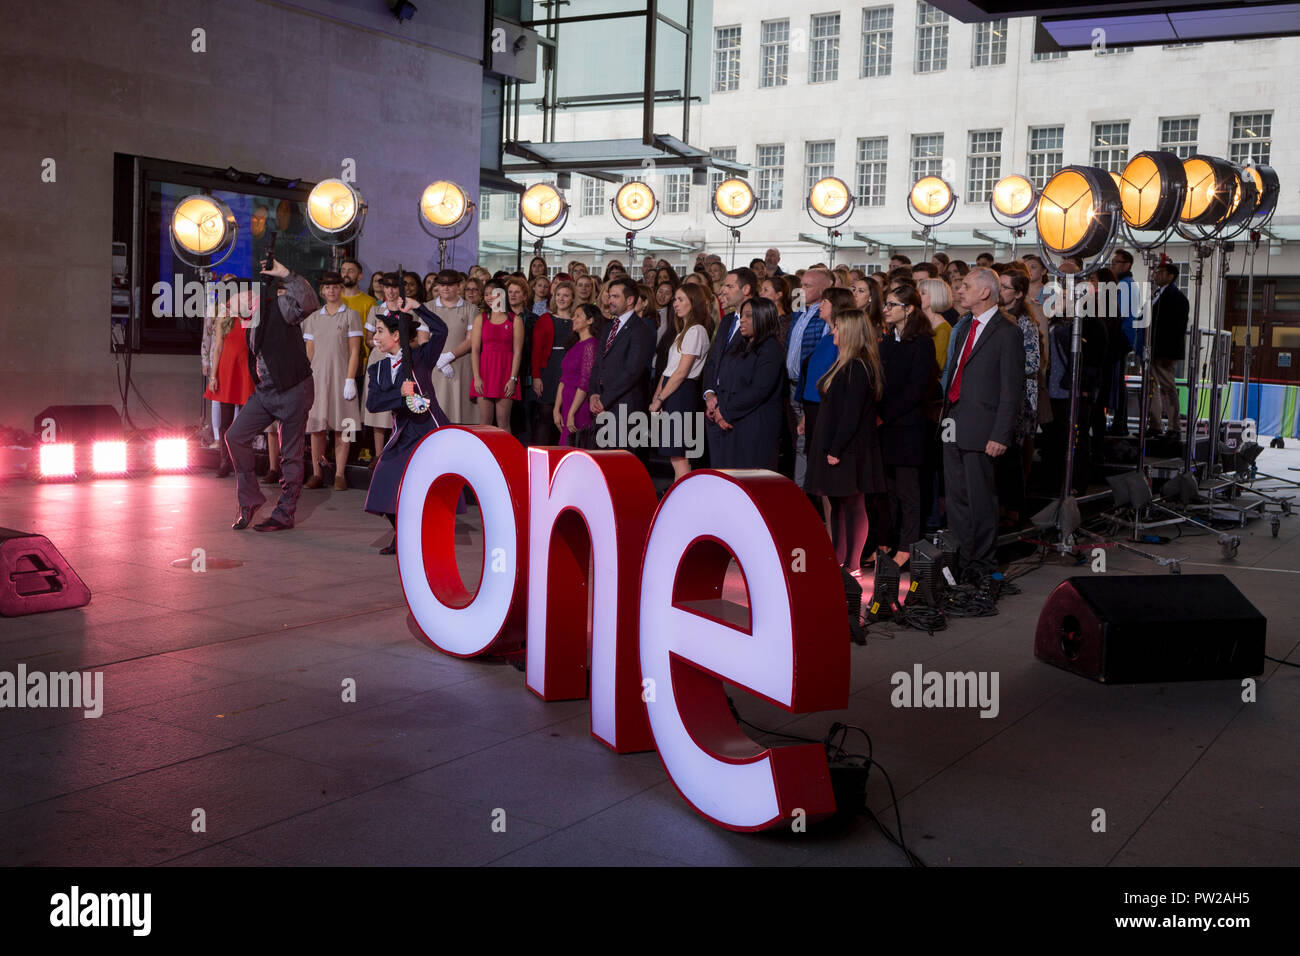 A choir rehearse a Mary Poppins song during an outside broadcast for the One Show at Broadcasting House, on 4th October 2018, in London, England. - Stock Image